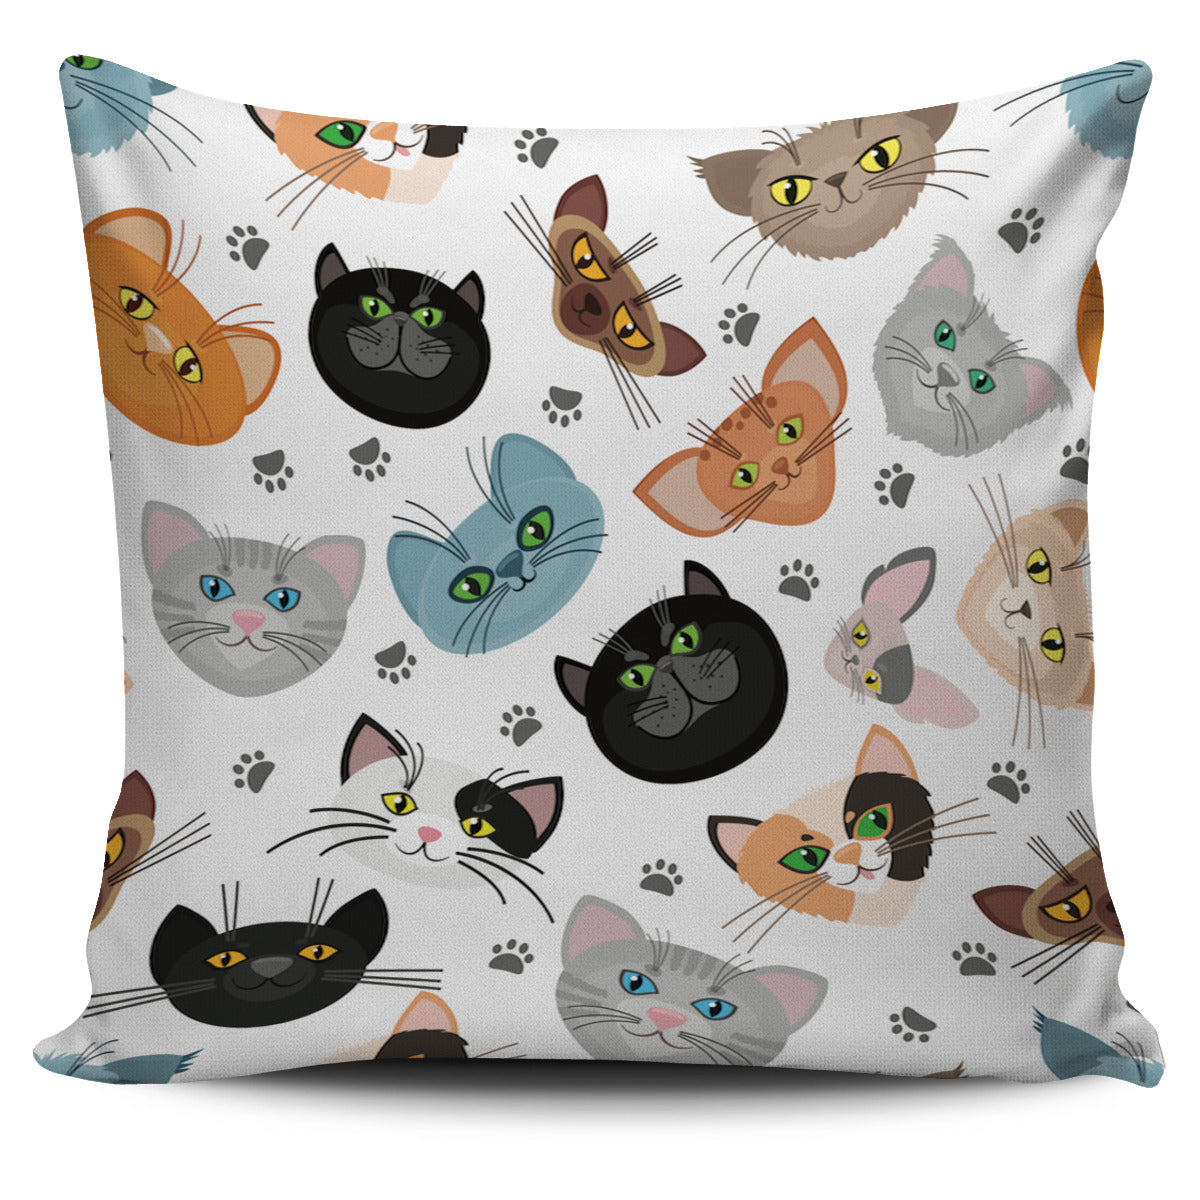 Different Cats Pillow Cover